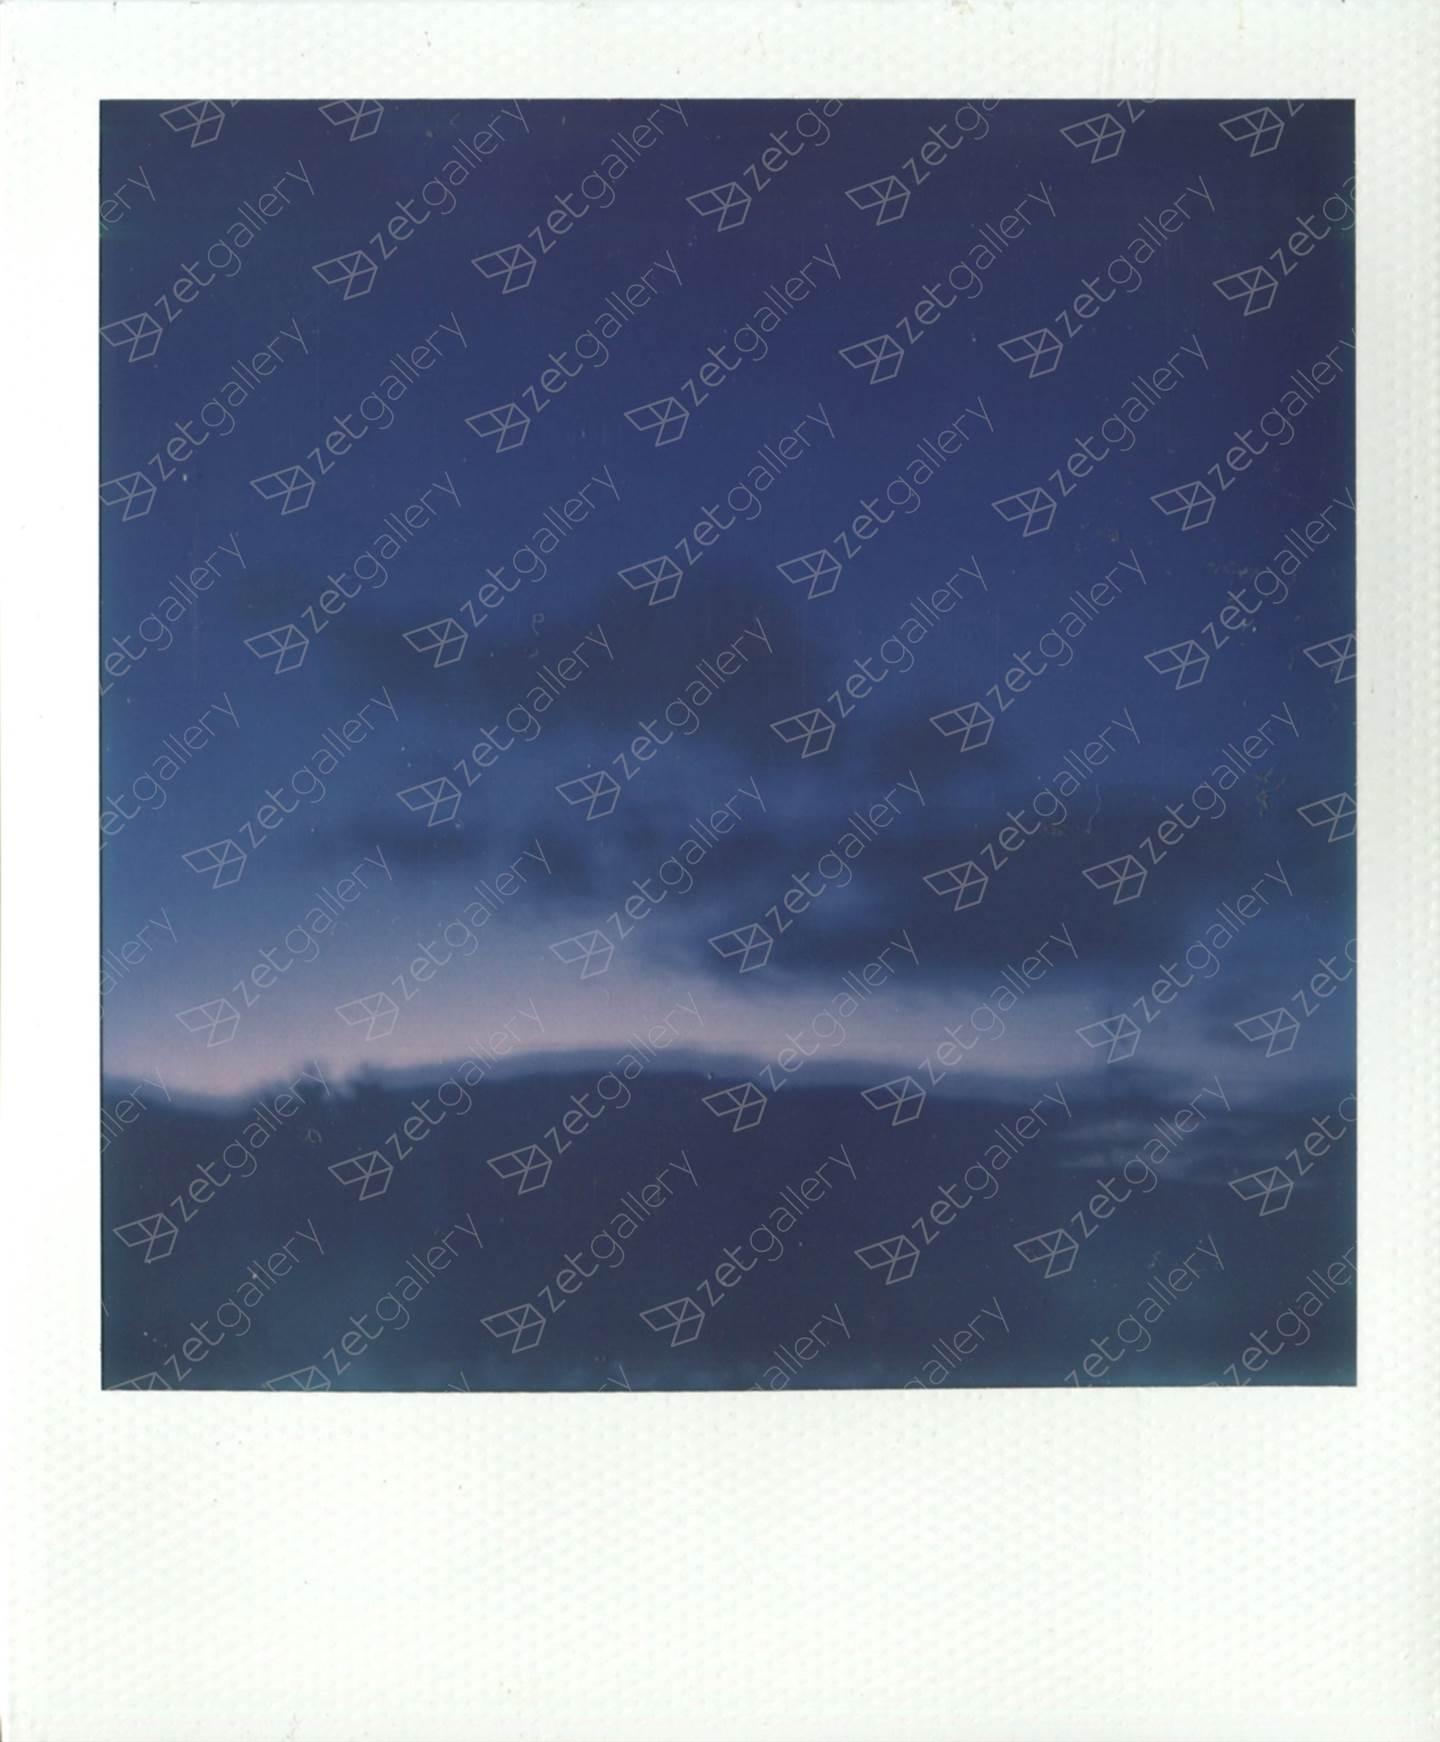 Polaroid 3, original Abstract Analog Photography by Yorgos Kapsalakis